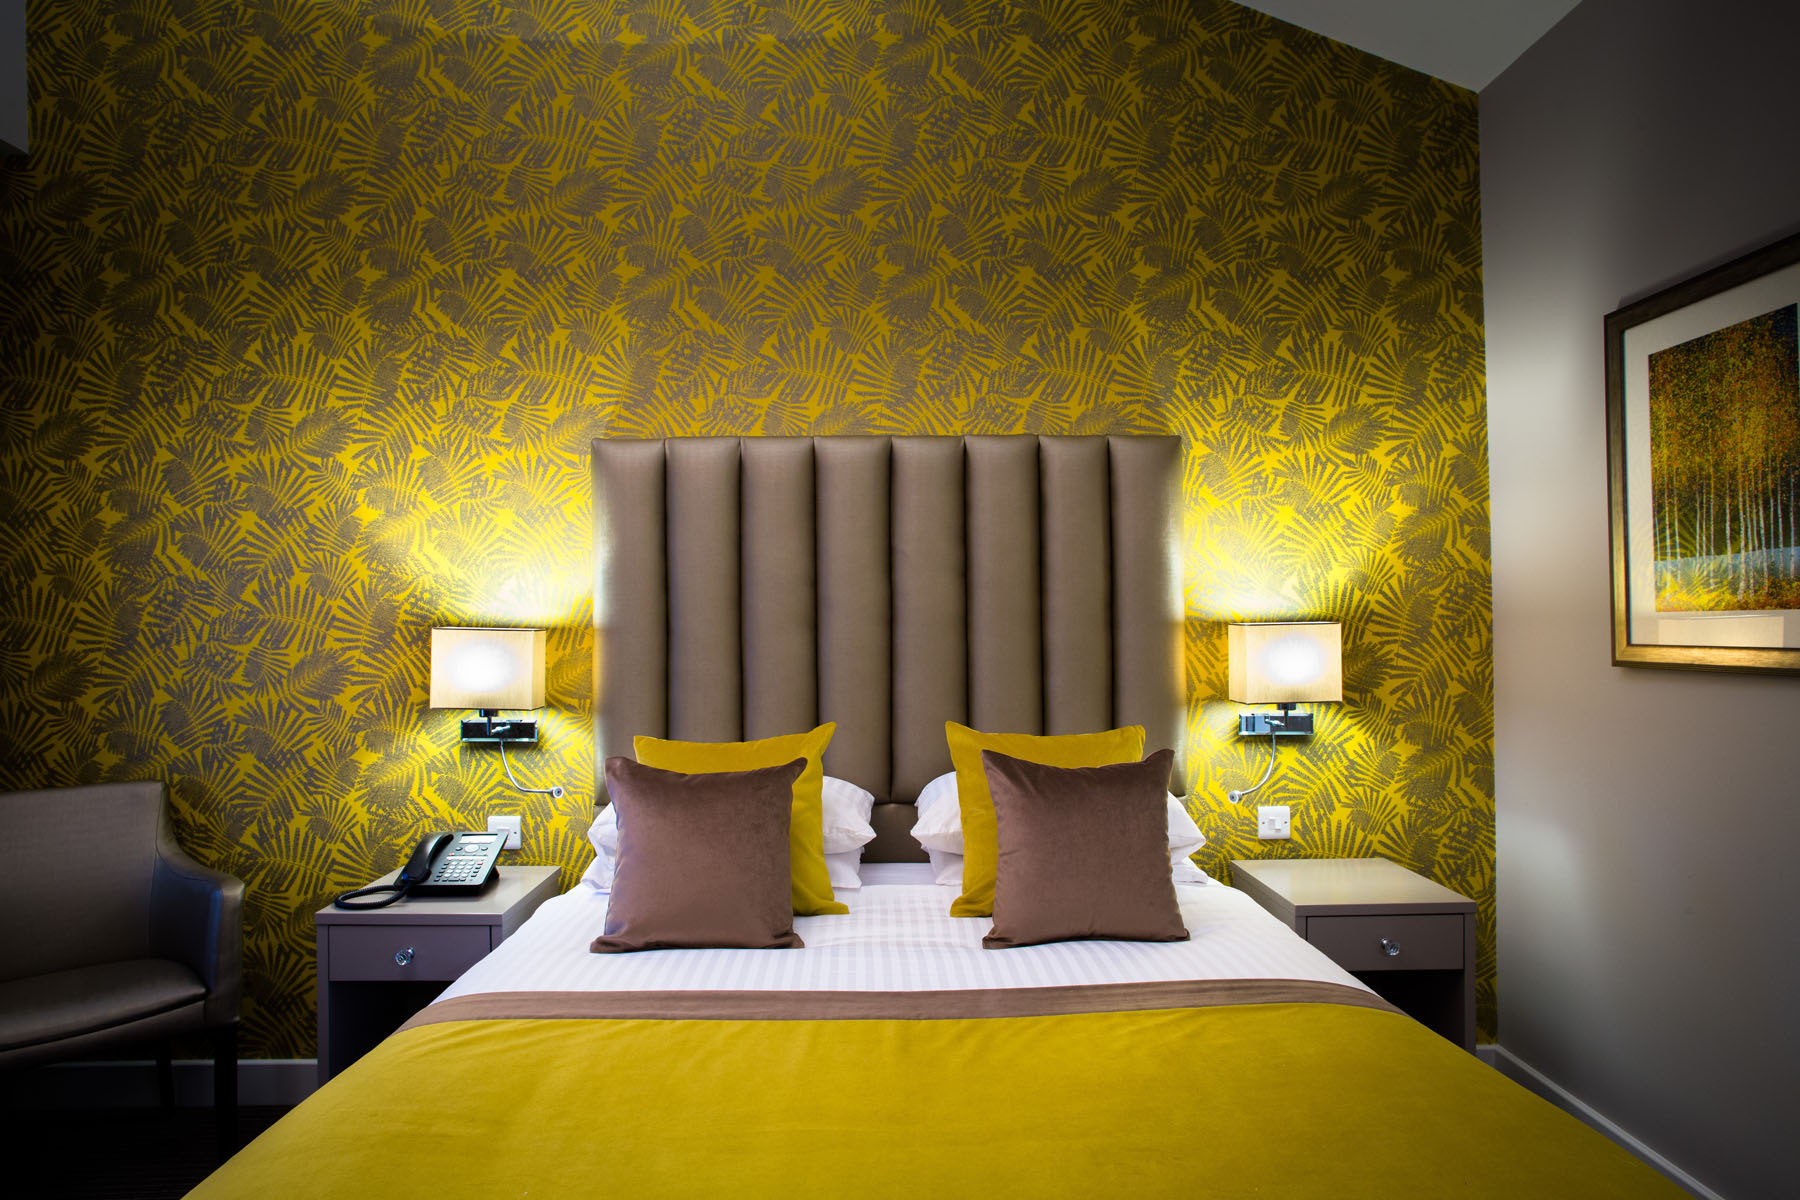 Luxury Bedrooms at 315 Bar & Restaurantoms at 315 Bar & Restaurant